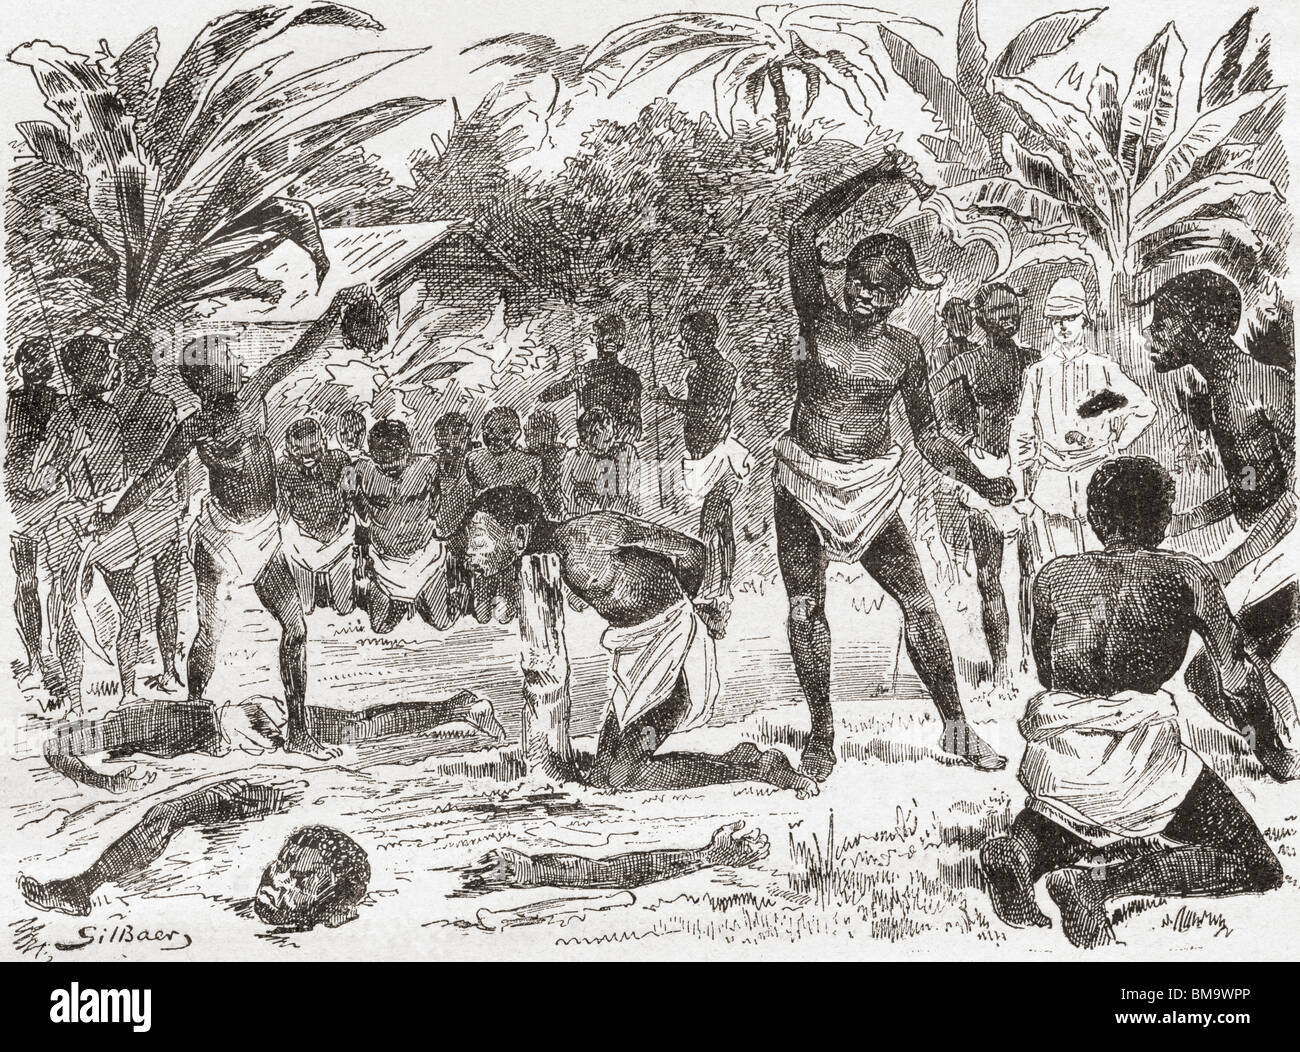 Human sacrifice in the Congo during the 19th century. - Stock Image